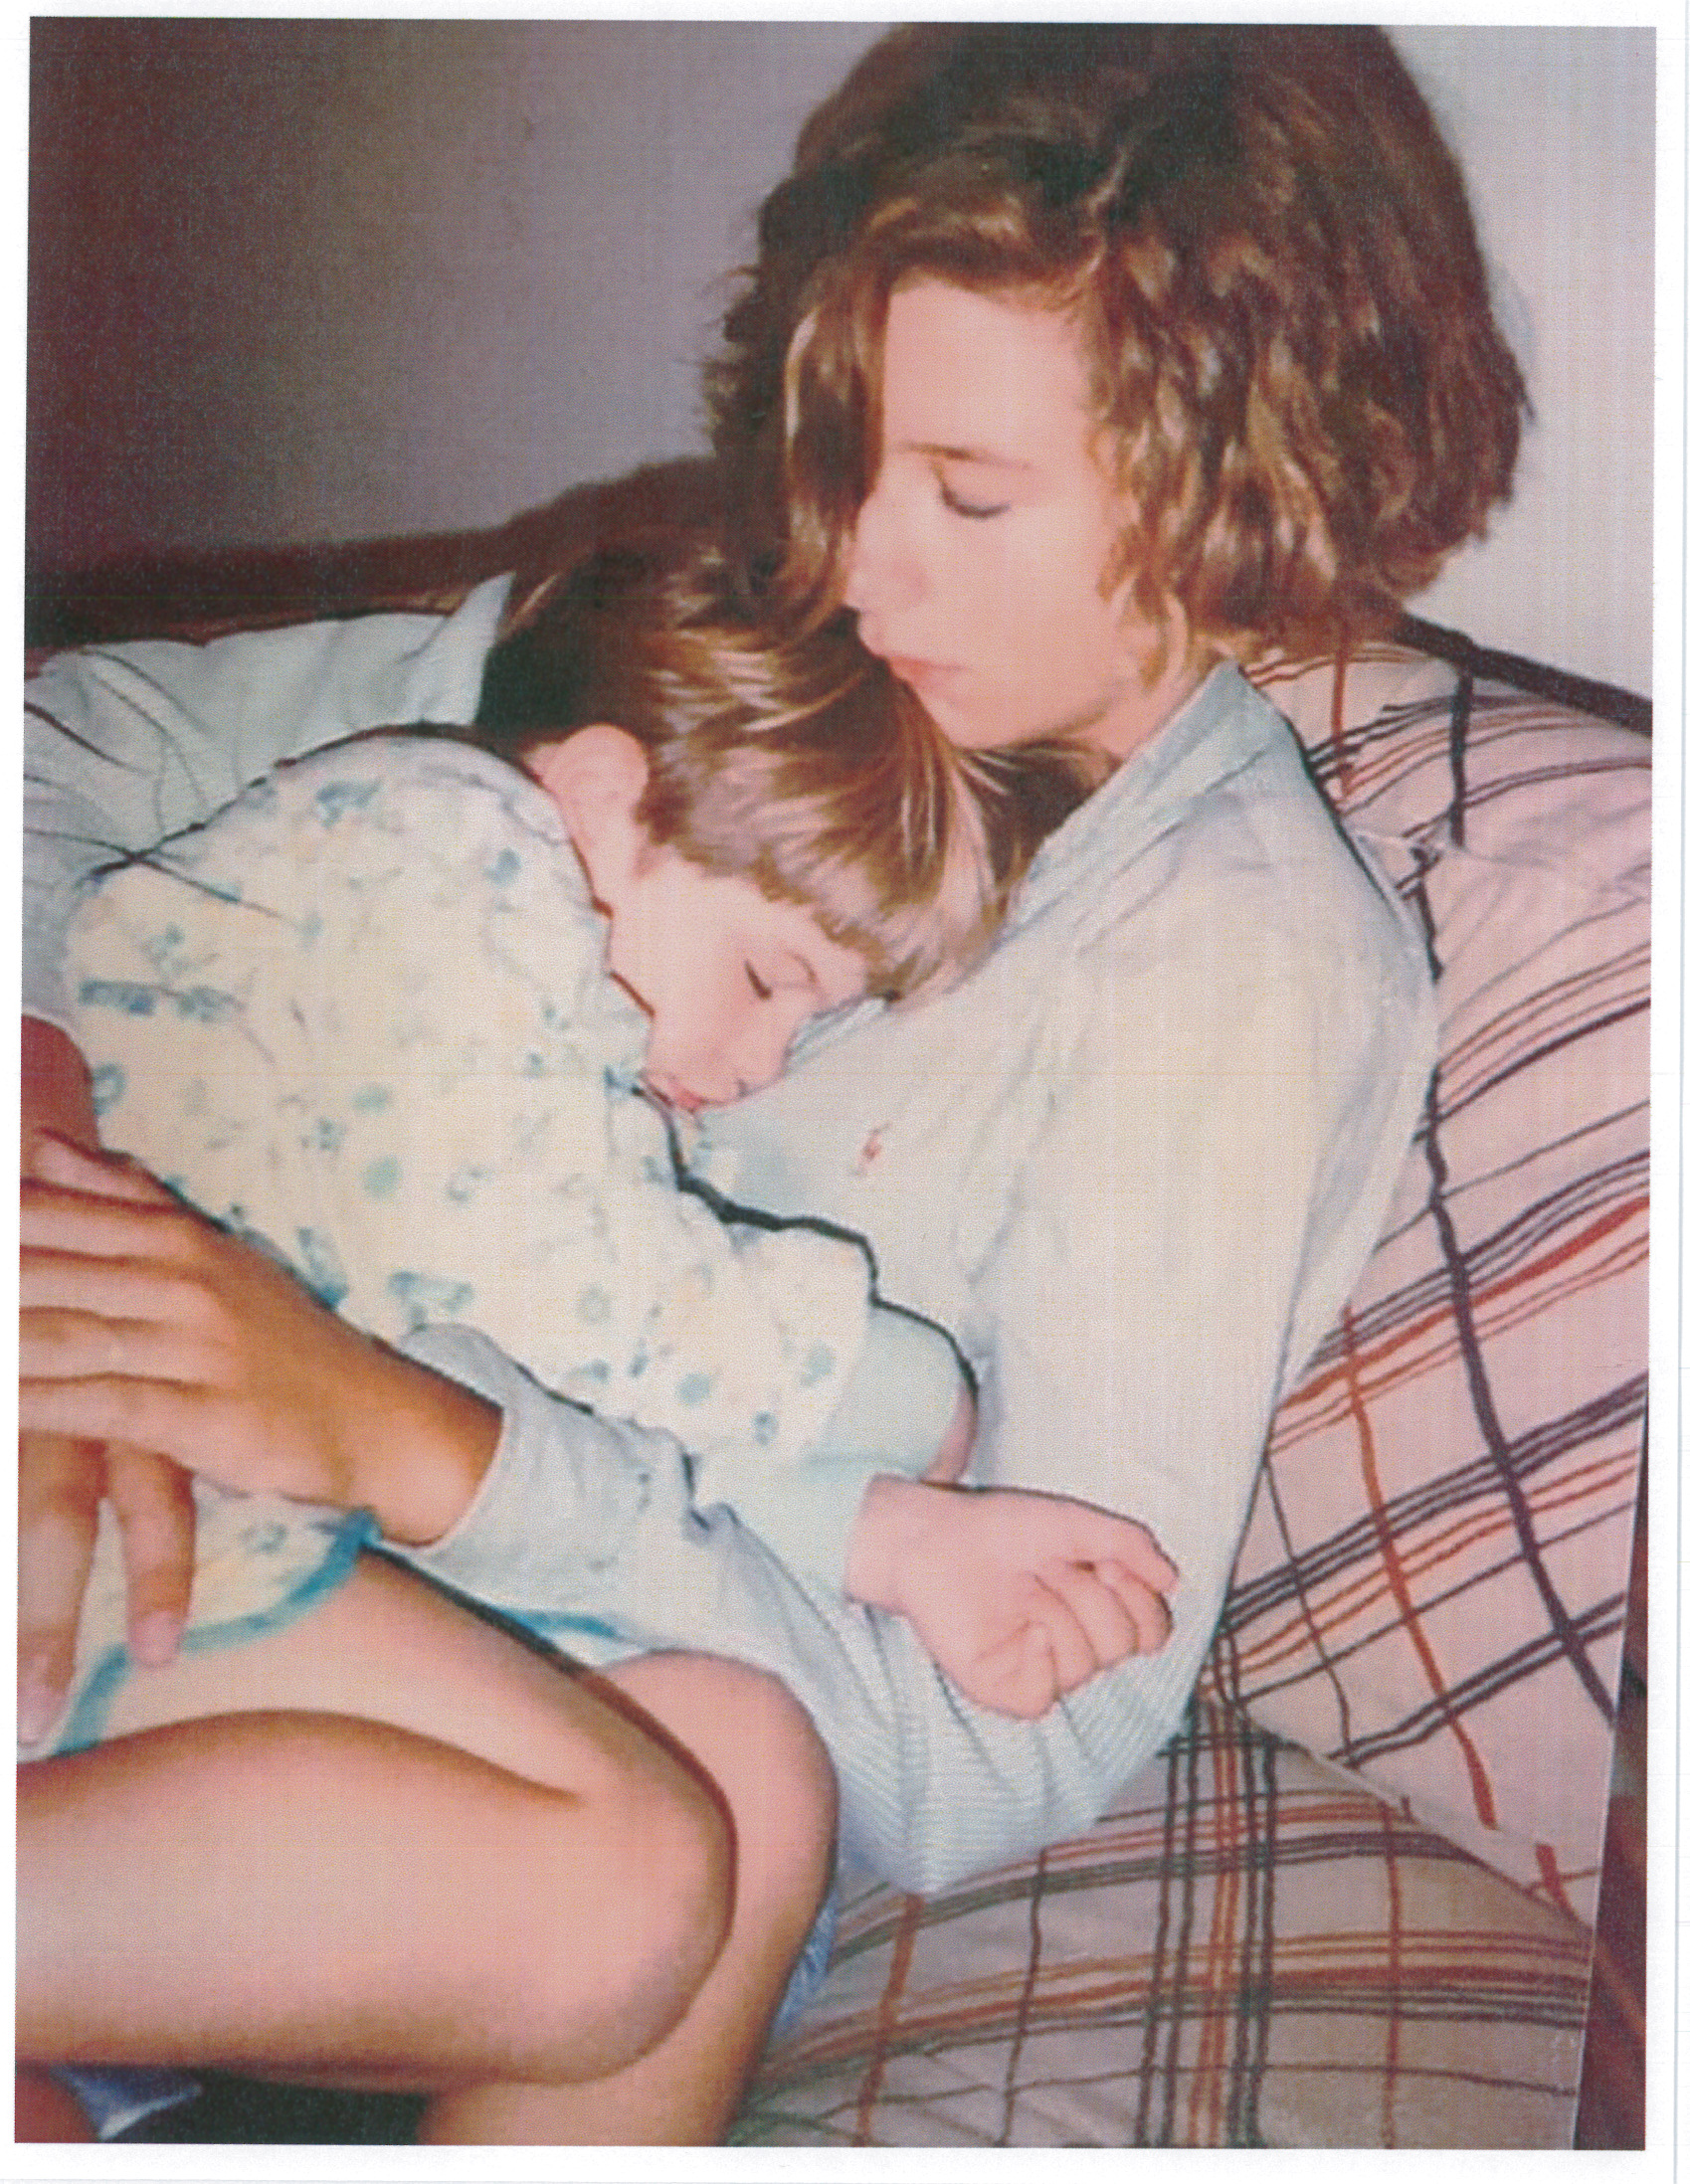 Sarah Rahr snuggling with her sister Beth as children